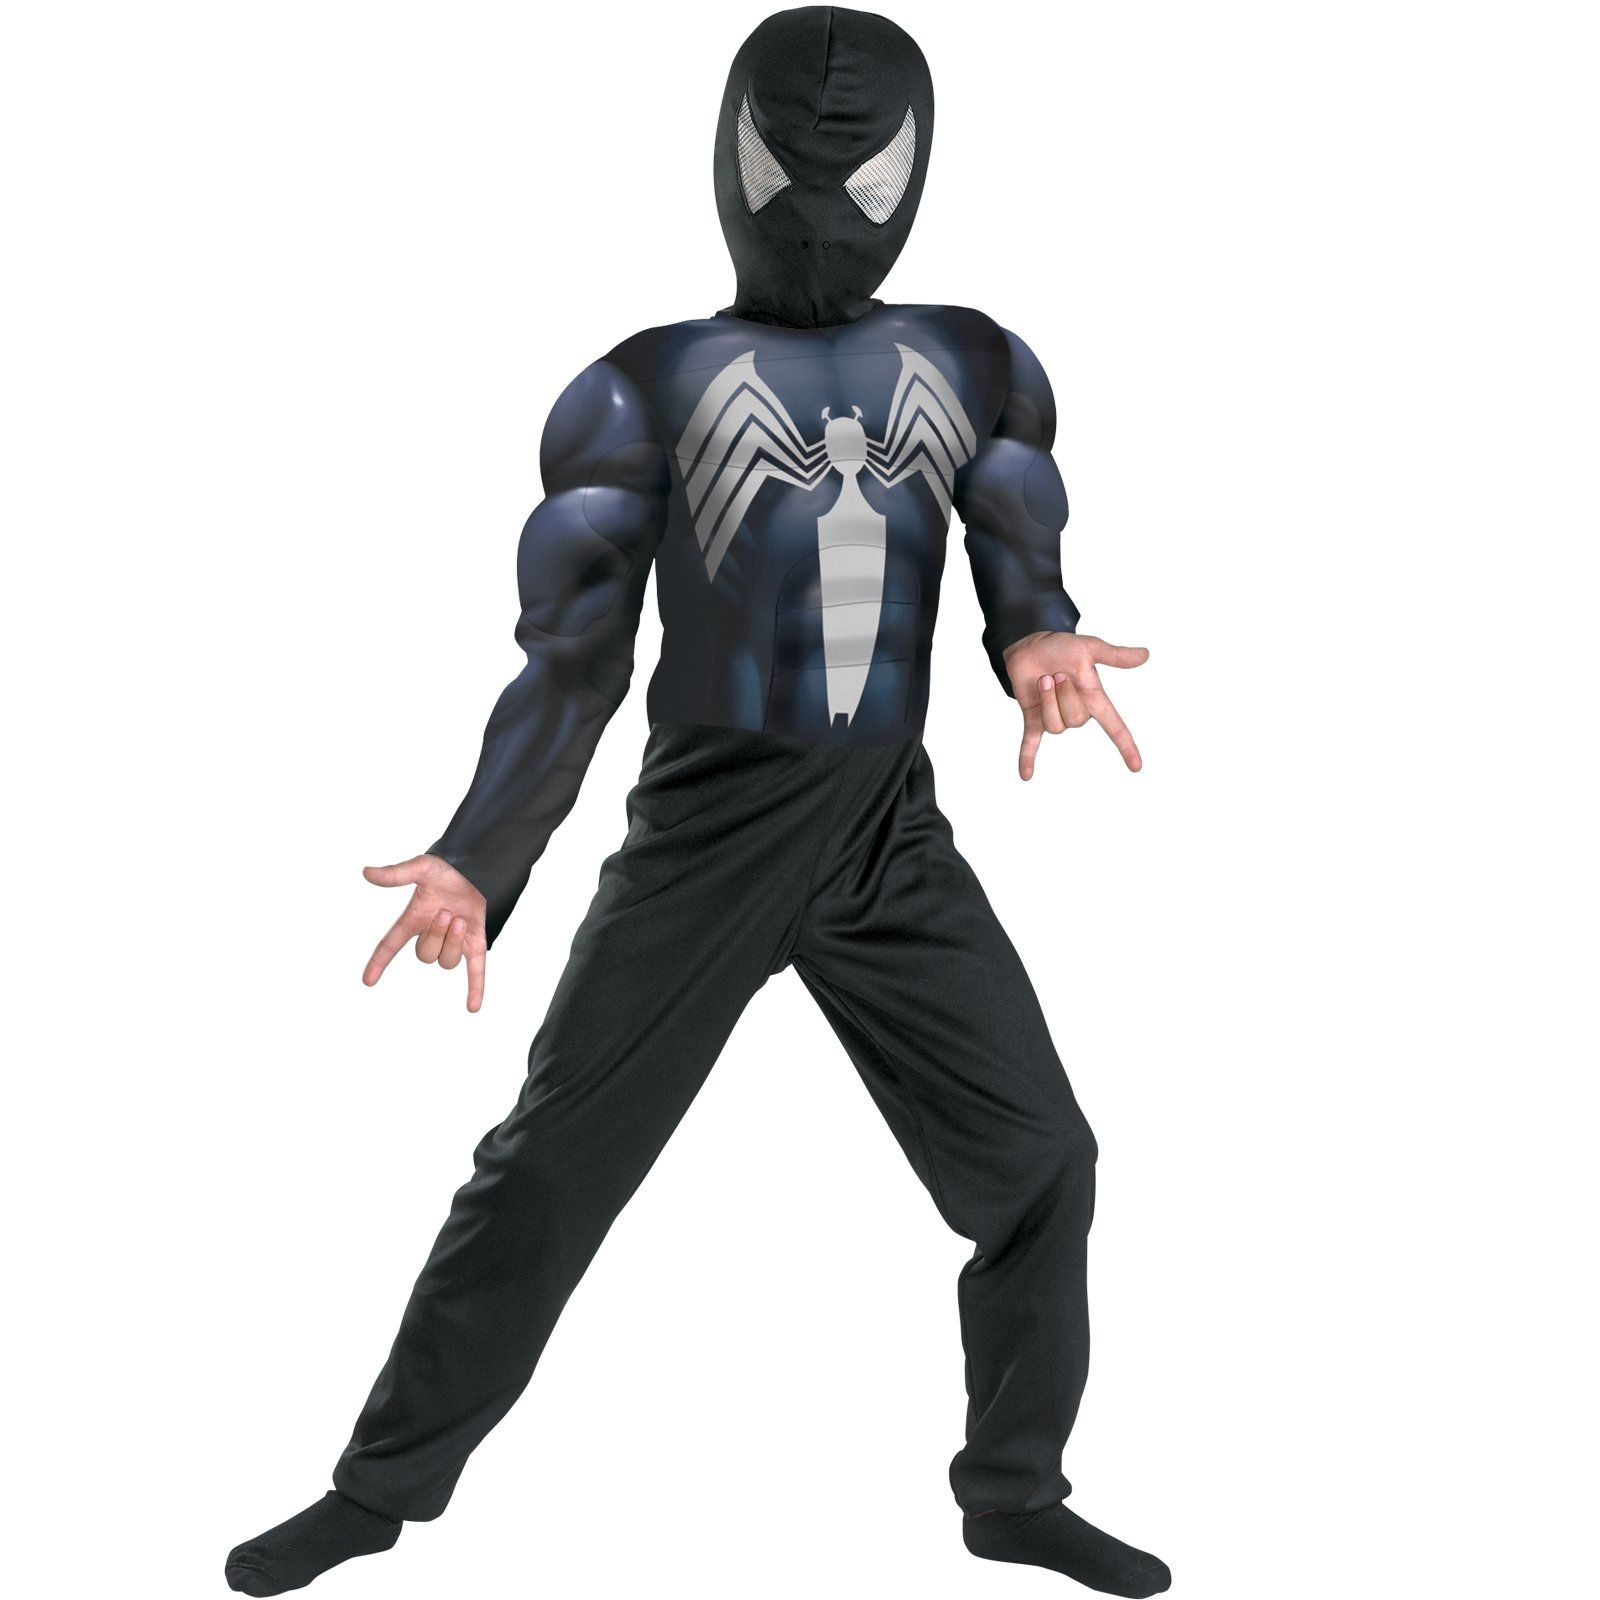 Venom Symbiote Costume Spider-Man Kids Adult Fancy Dress Cosplay Dress Outfit